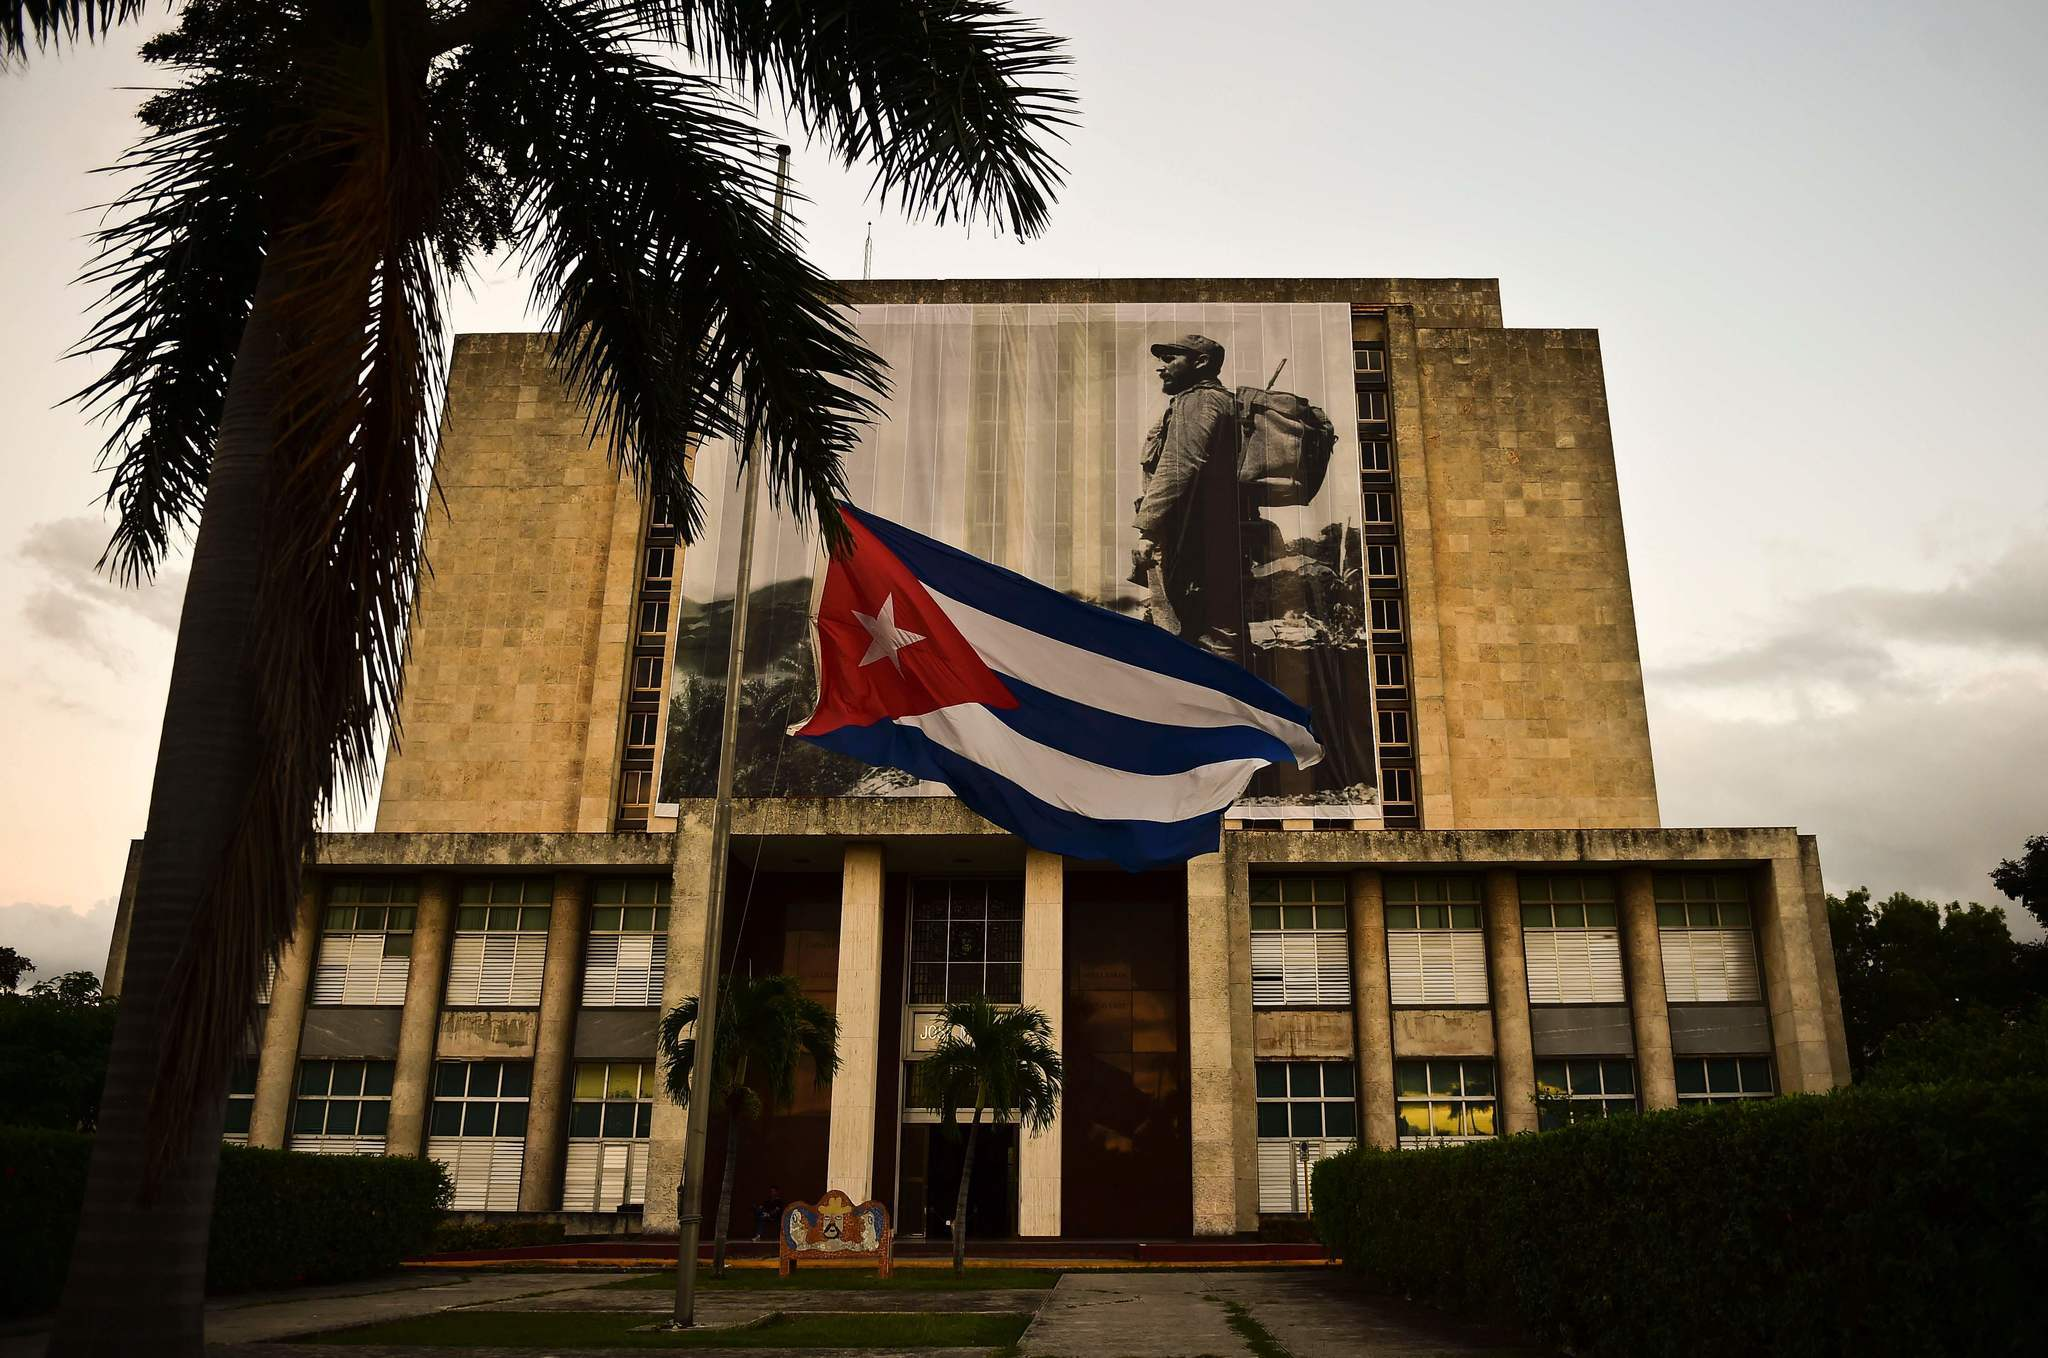 To Trump, the human rights situation in Cuba is unacceptable. What ...